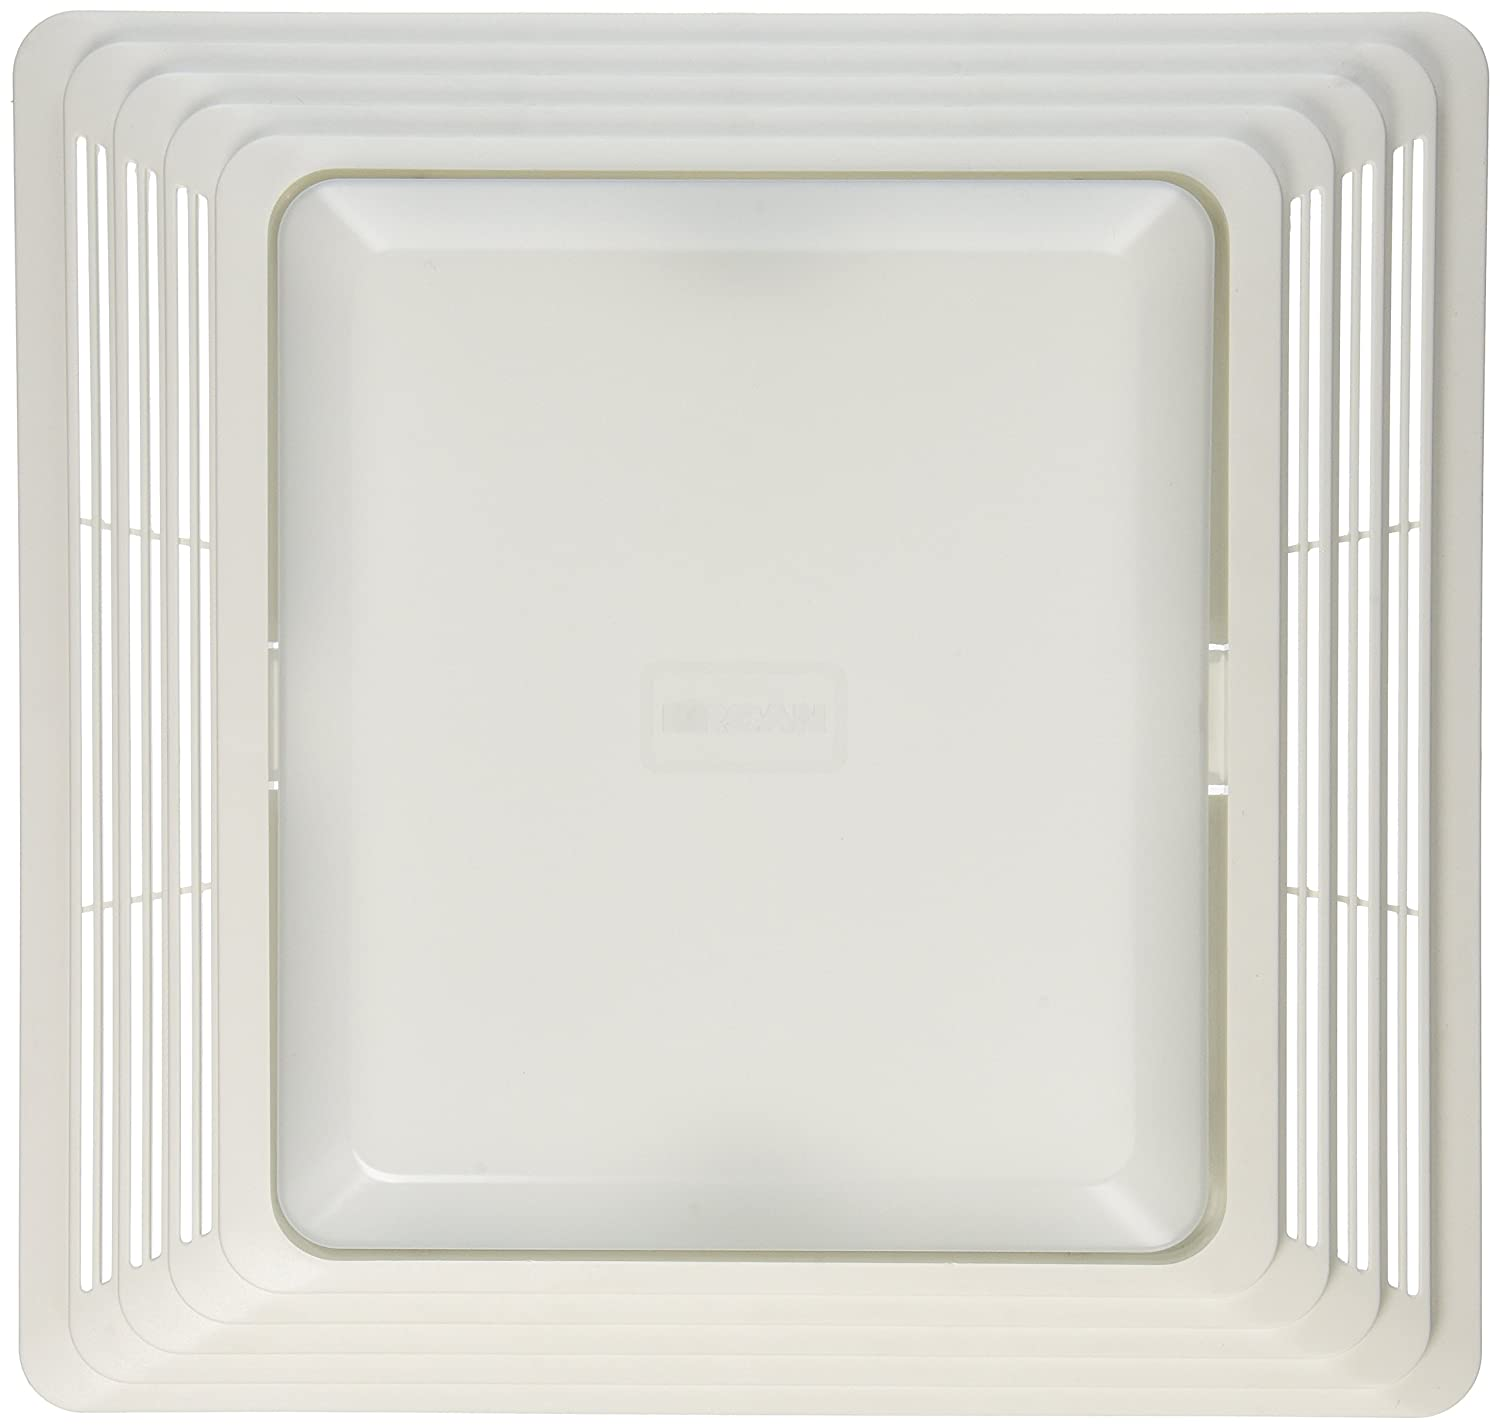 Broan S97014094 Bathroom Fan Cover Grille And Lens Ebay